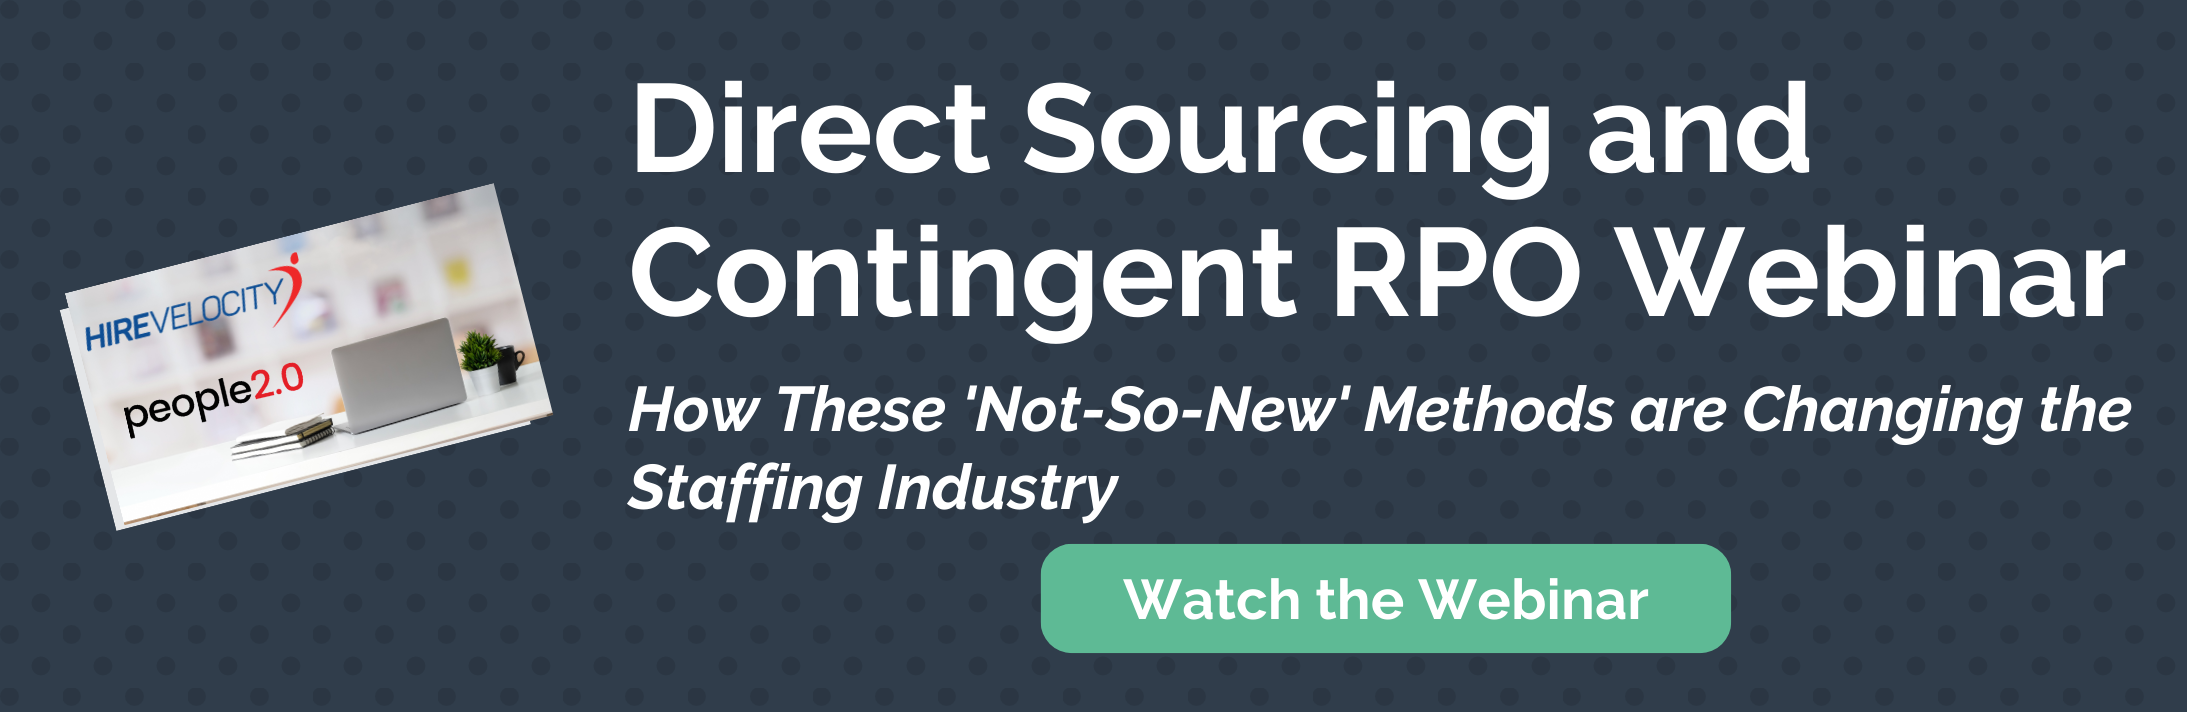 Direct Sourcing & Contingent RPO_Hire Velocity_Watch the Webinar